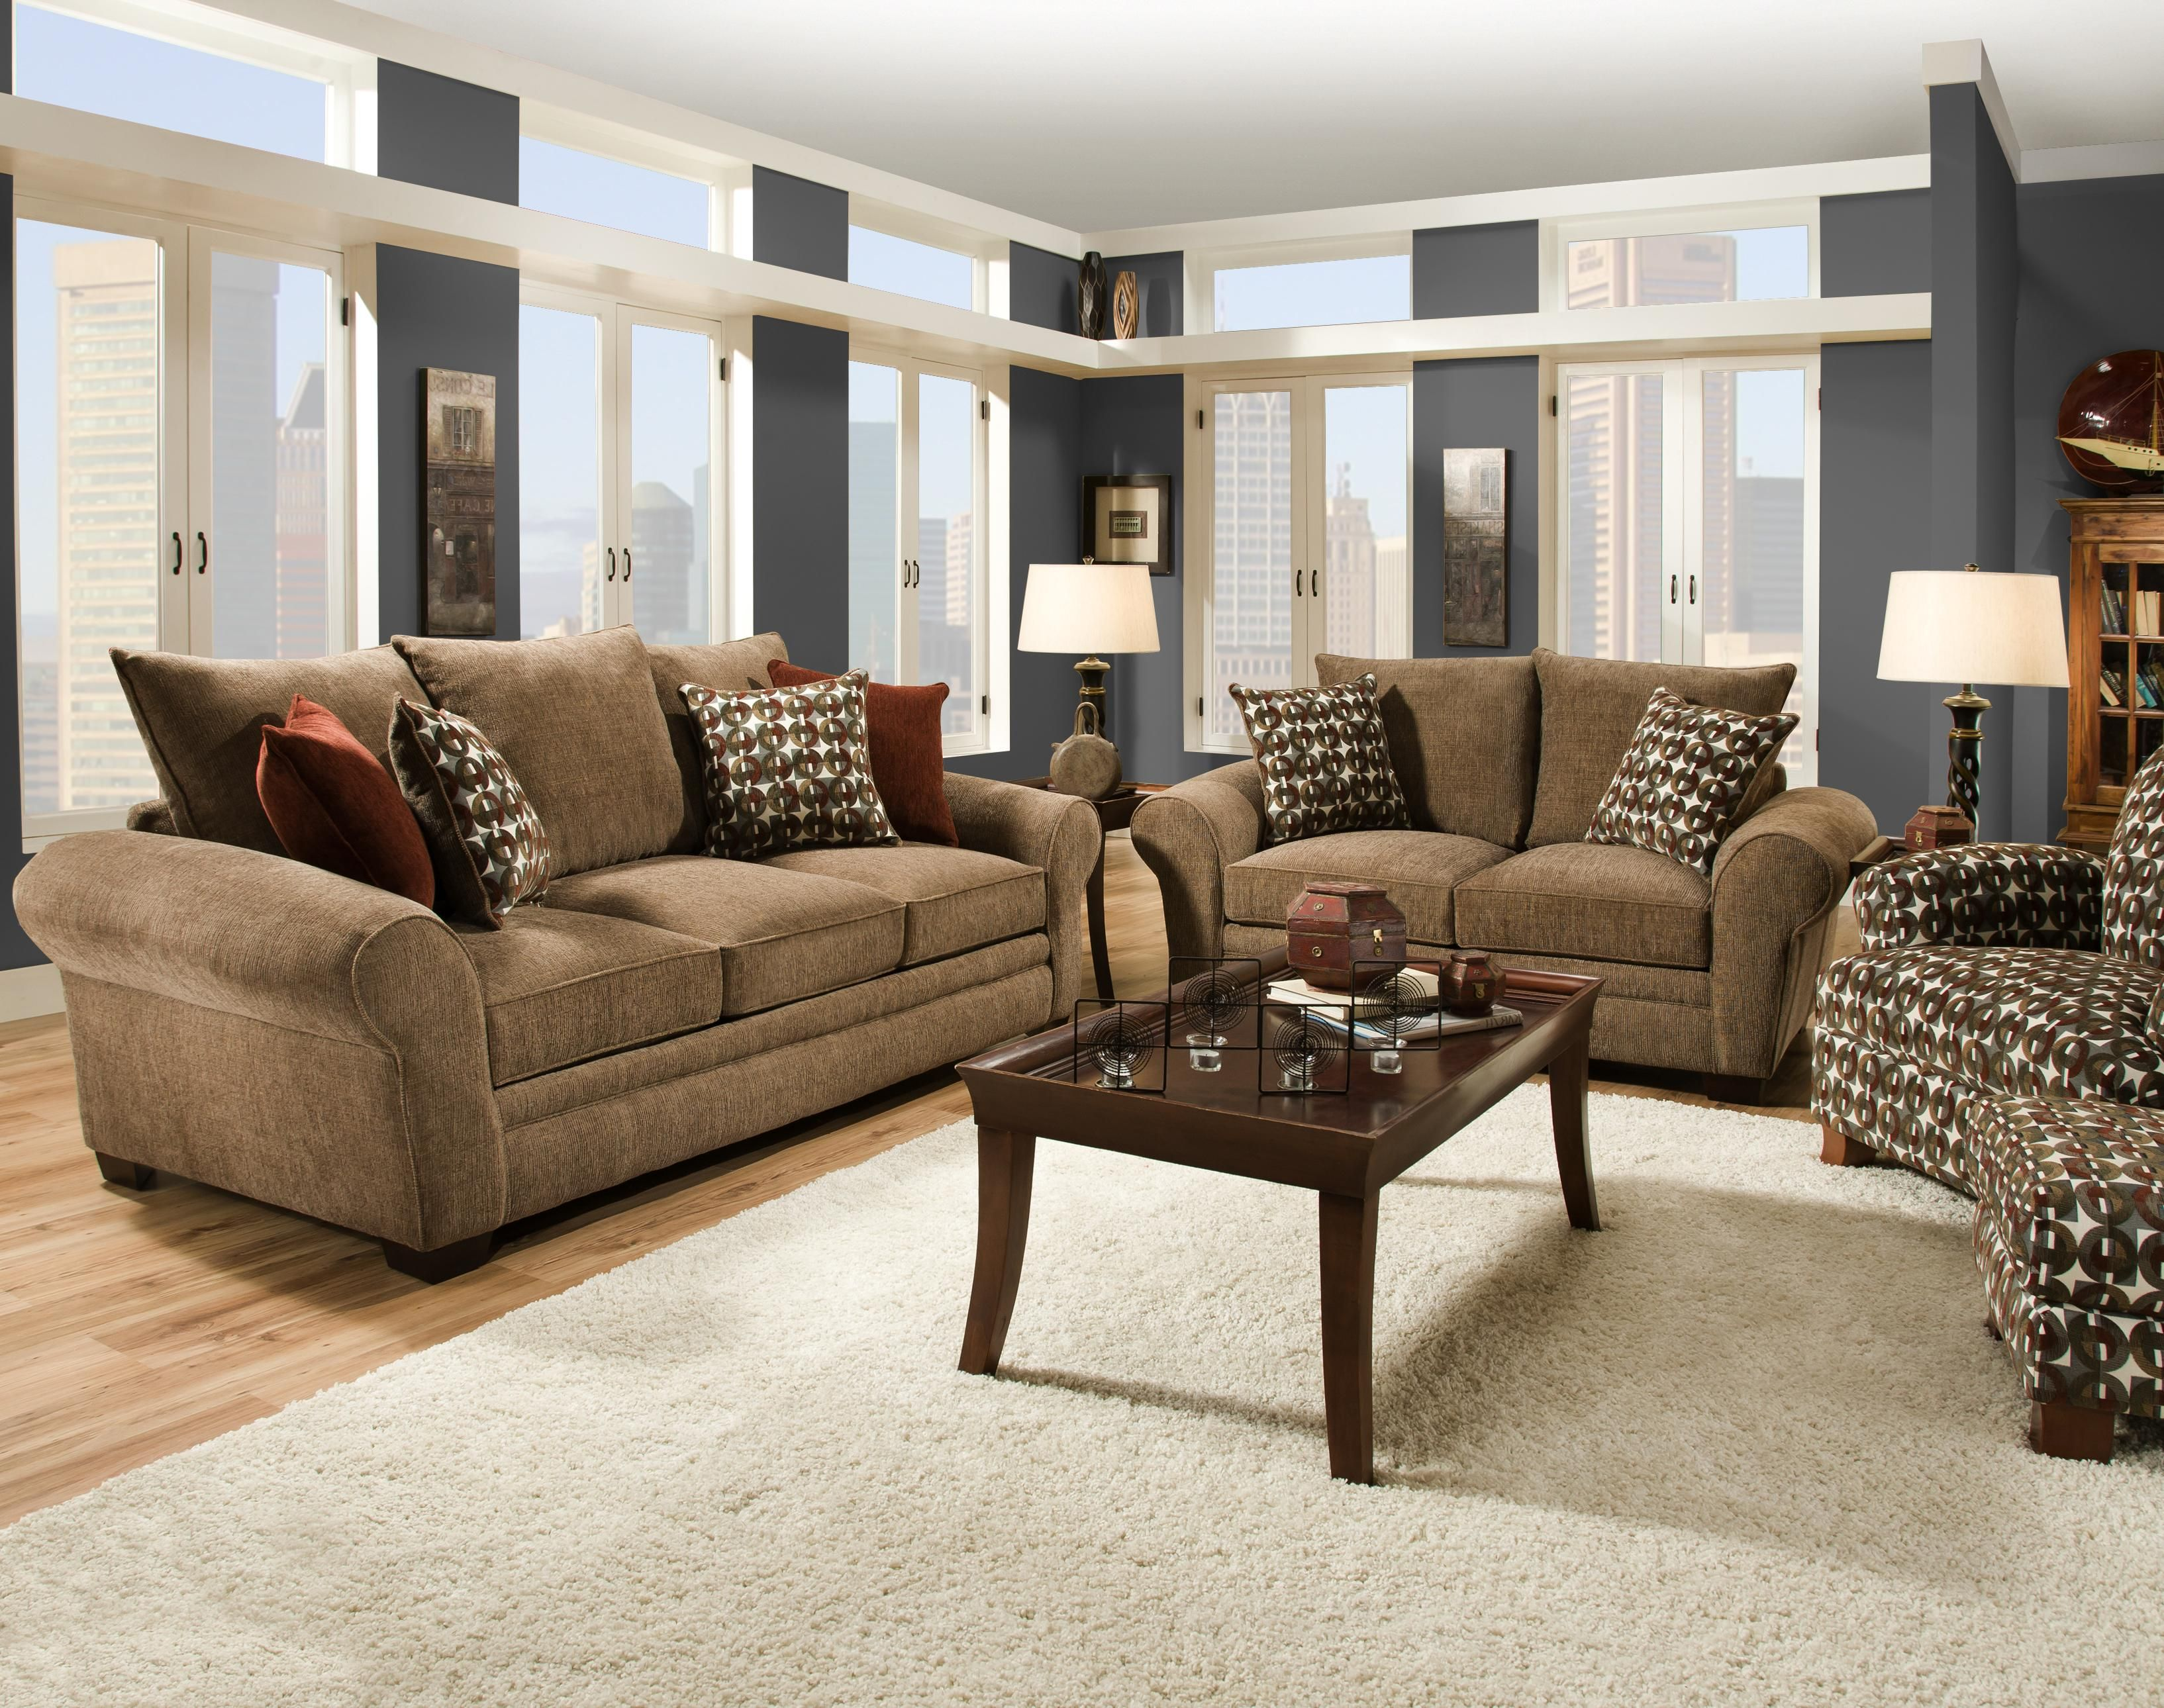 Home Furniture Plus Bedding Is Proud To Offer The Baton Rouge Lafayette Beaumont Lake Charles And New Iberia Areas Best In Furnishings At Low